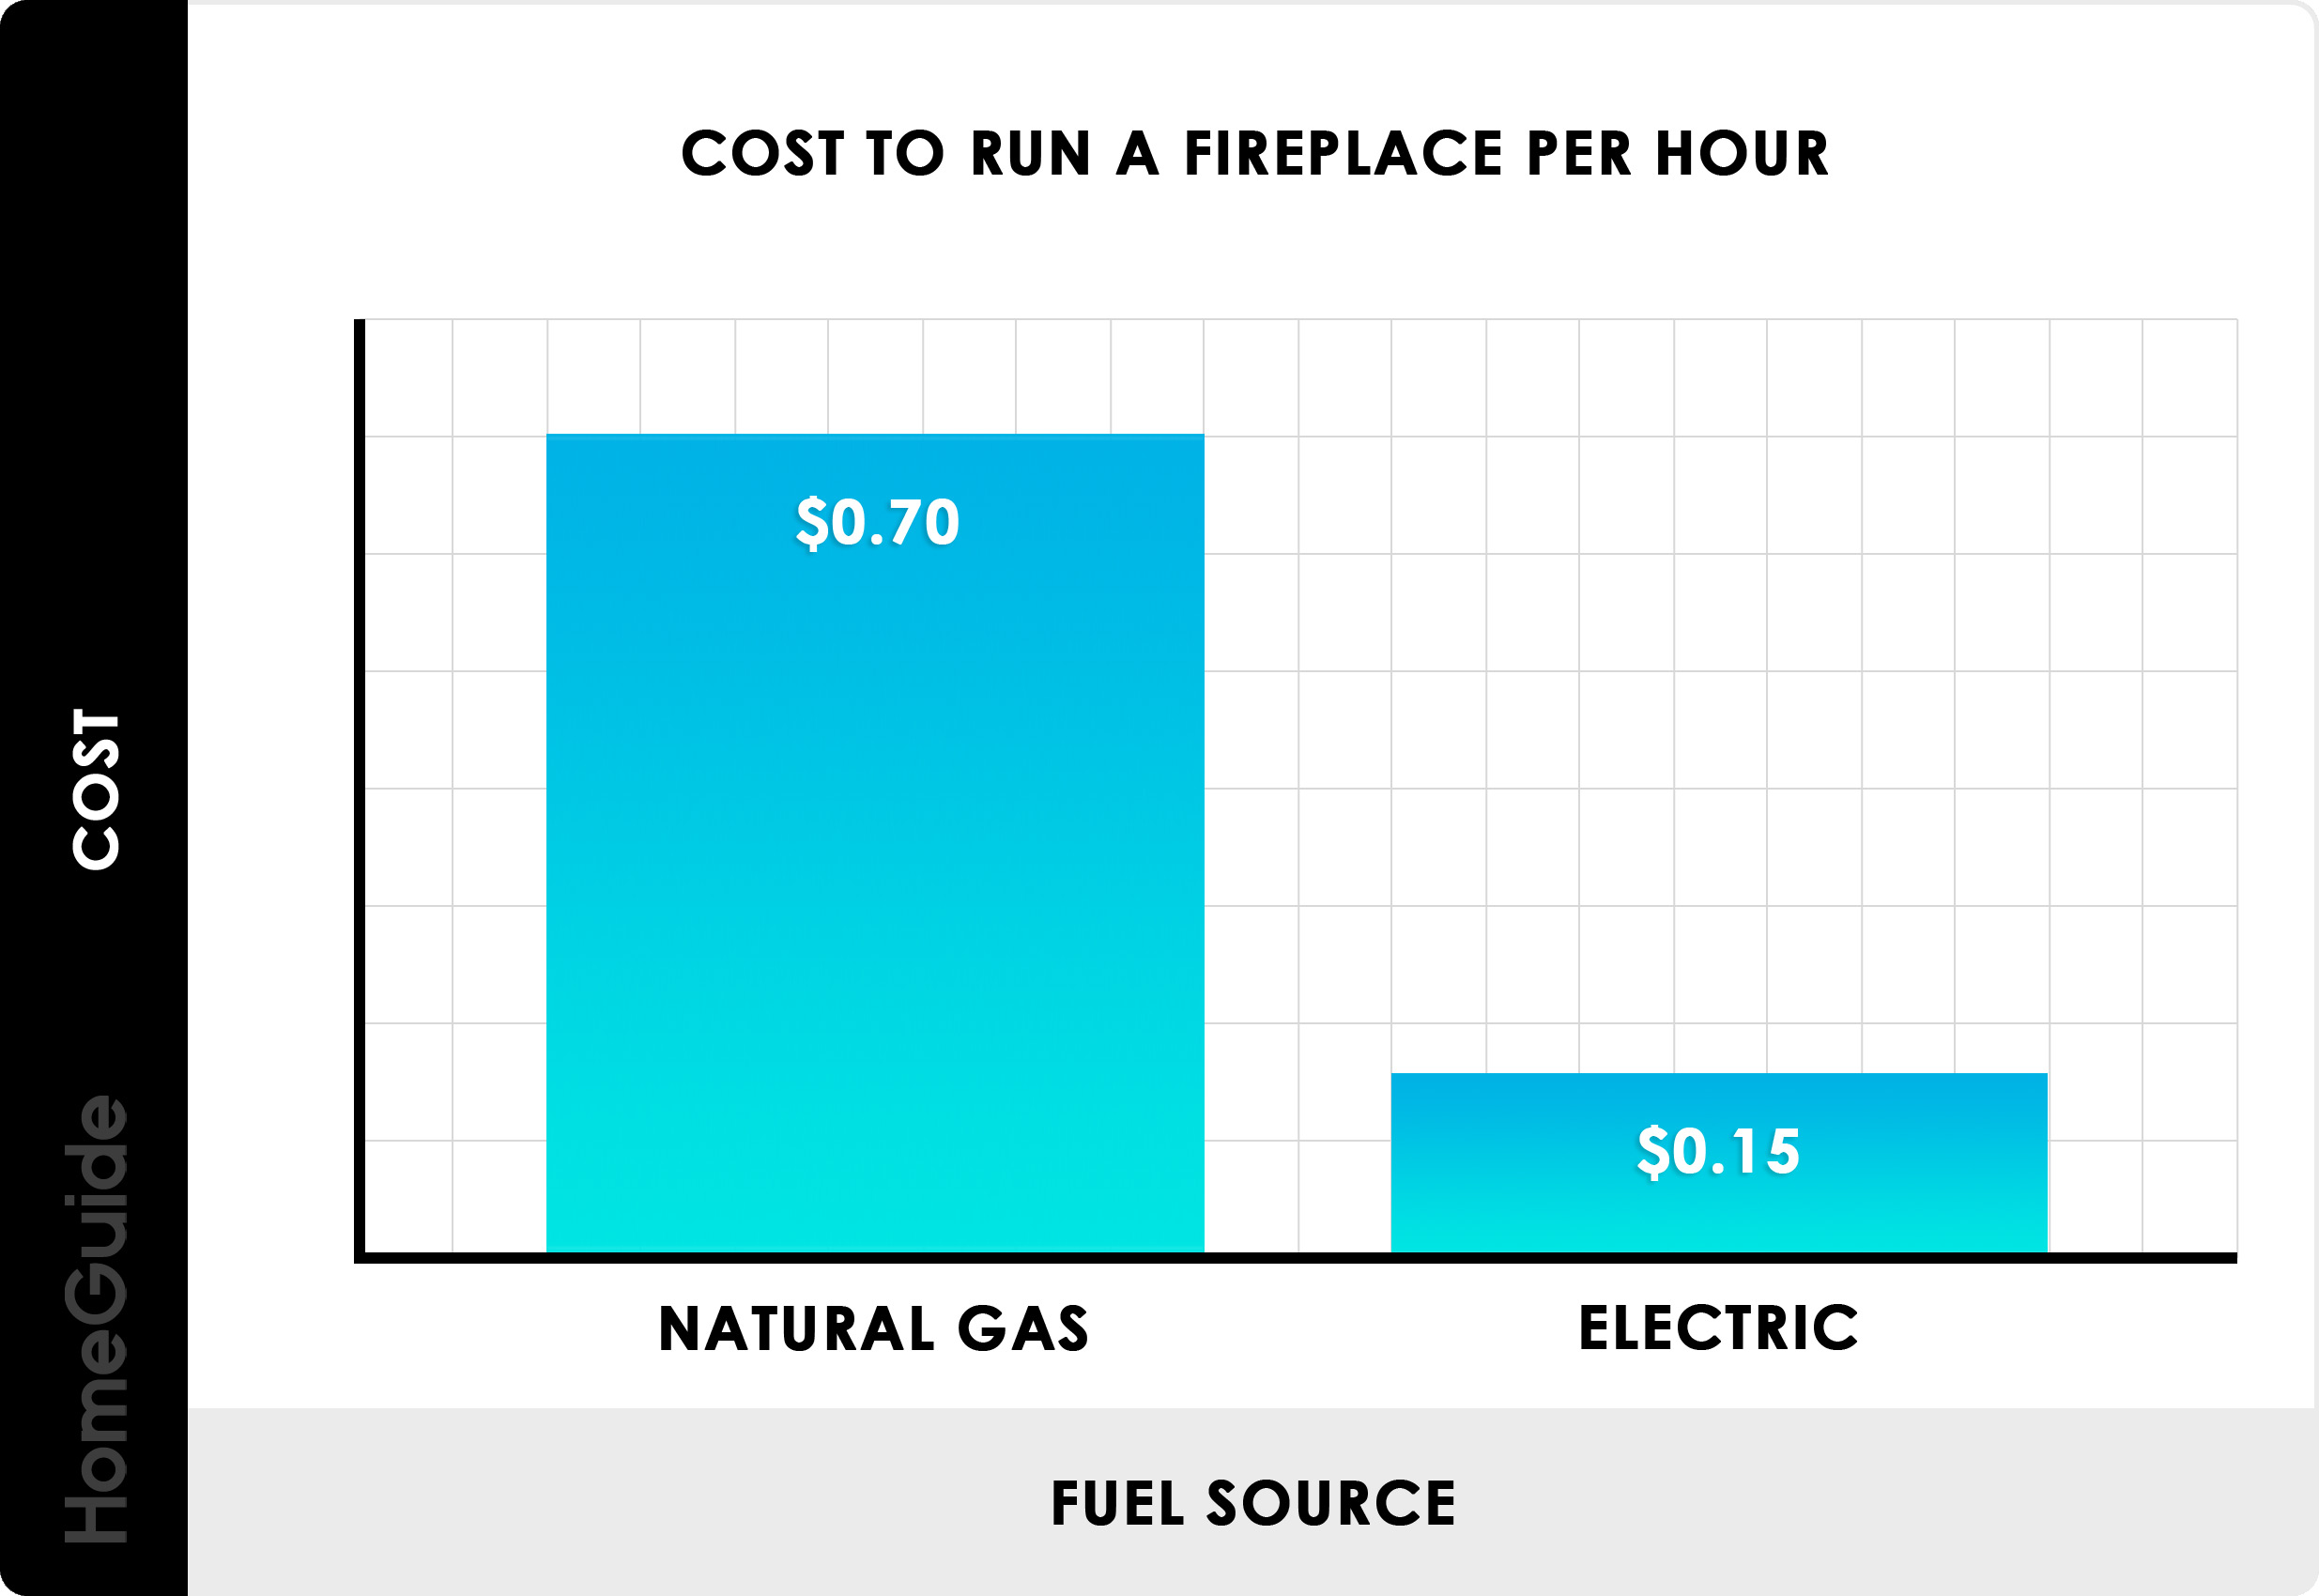 homeguide cost to run a gas or electric fireplace per hour chart - How Much Does It Cost To Get Natural Gas Connected